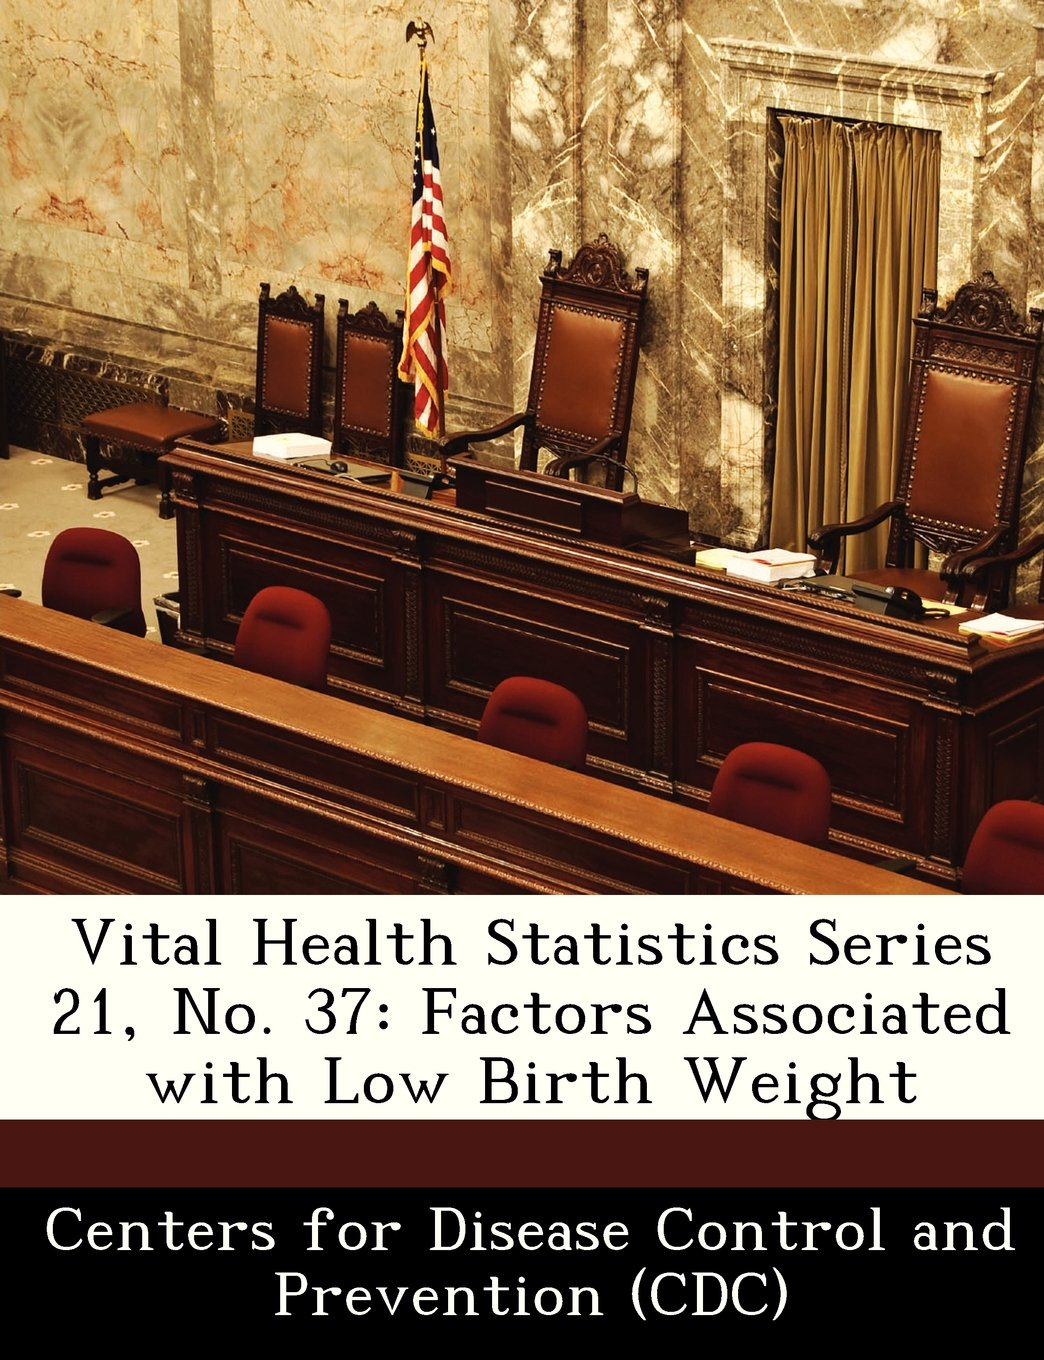 Vital Health Statistics Series 21, No. 37: Factors Associated with Low Birth Weight PDF